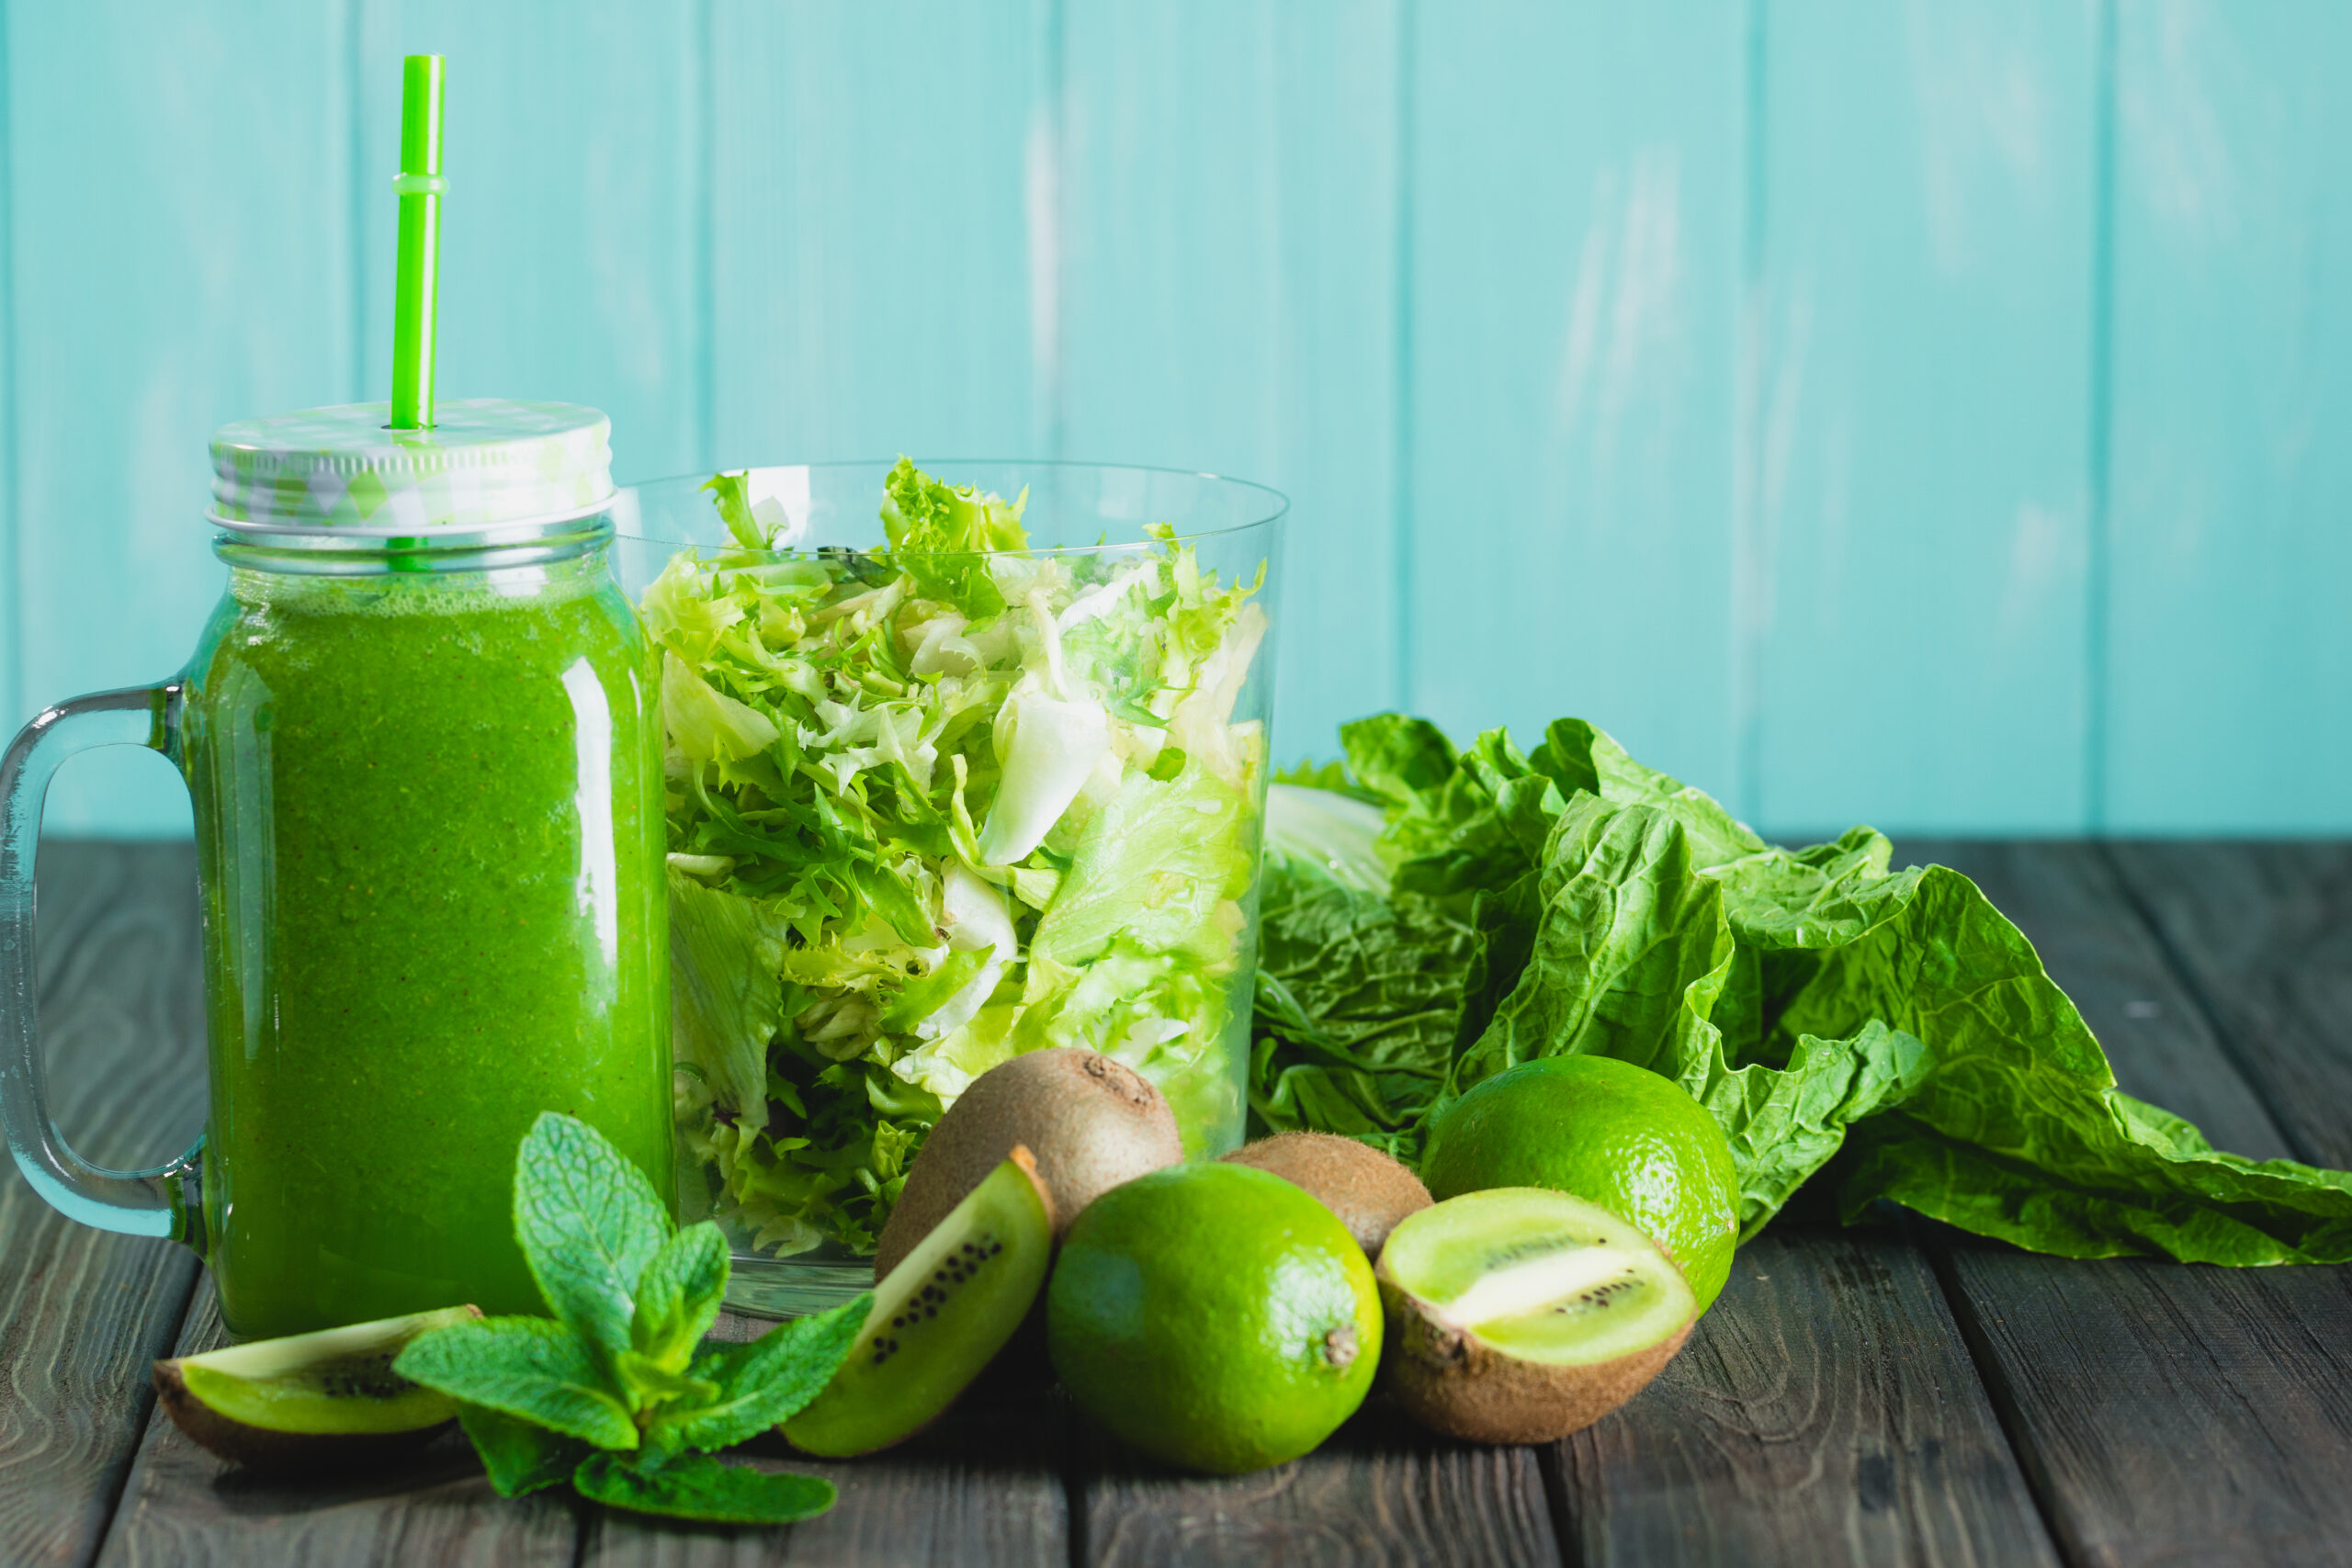 Blended,Green,Smoothie,With,Ingredients,On,Wooden,Table,Selective,Focus.